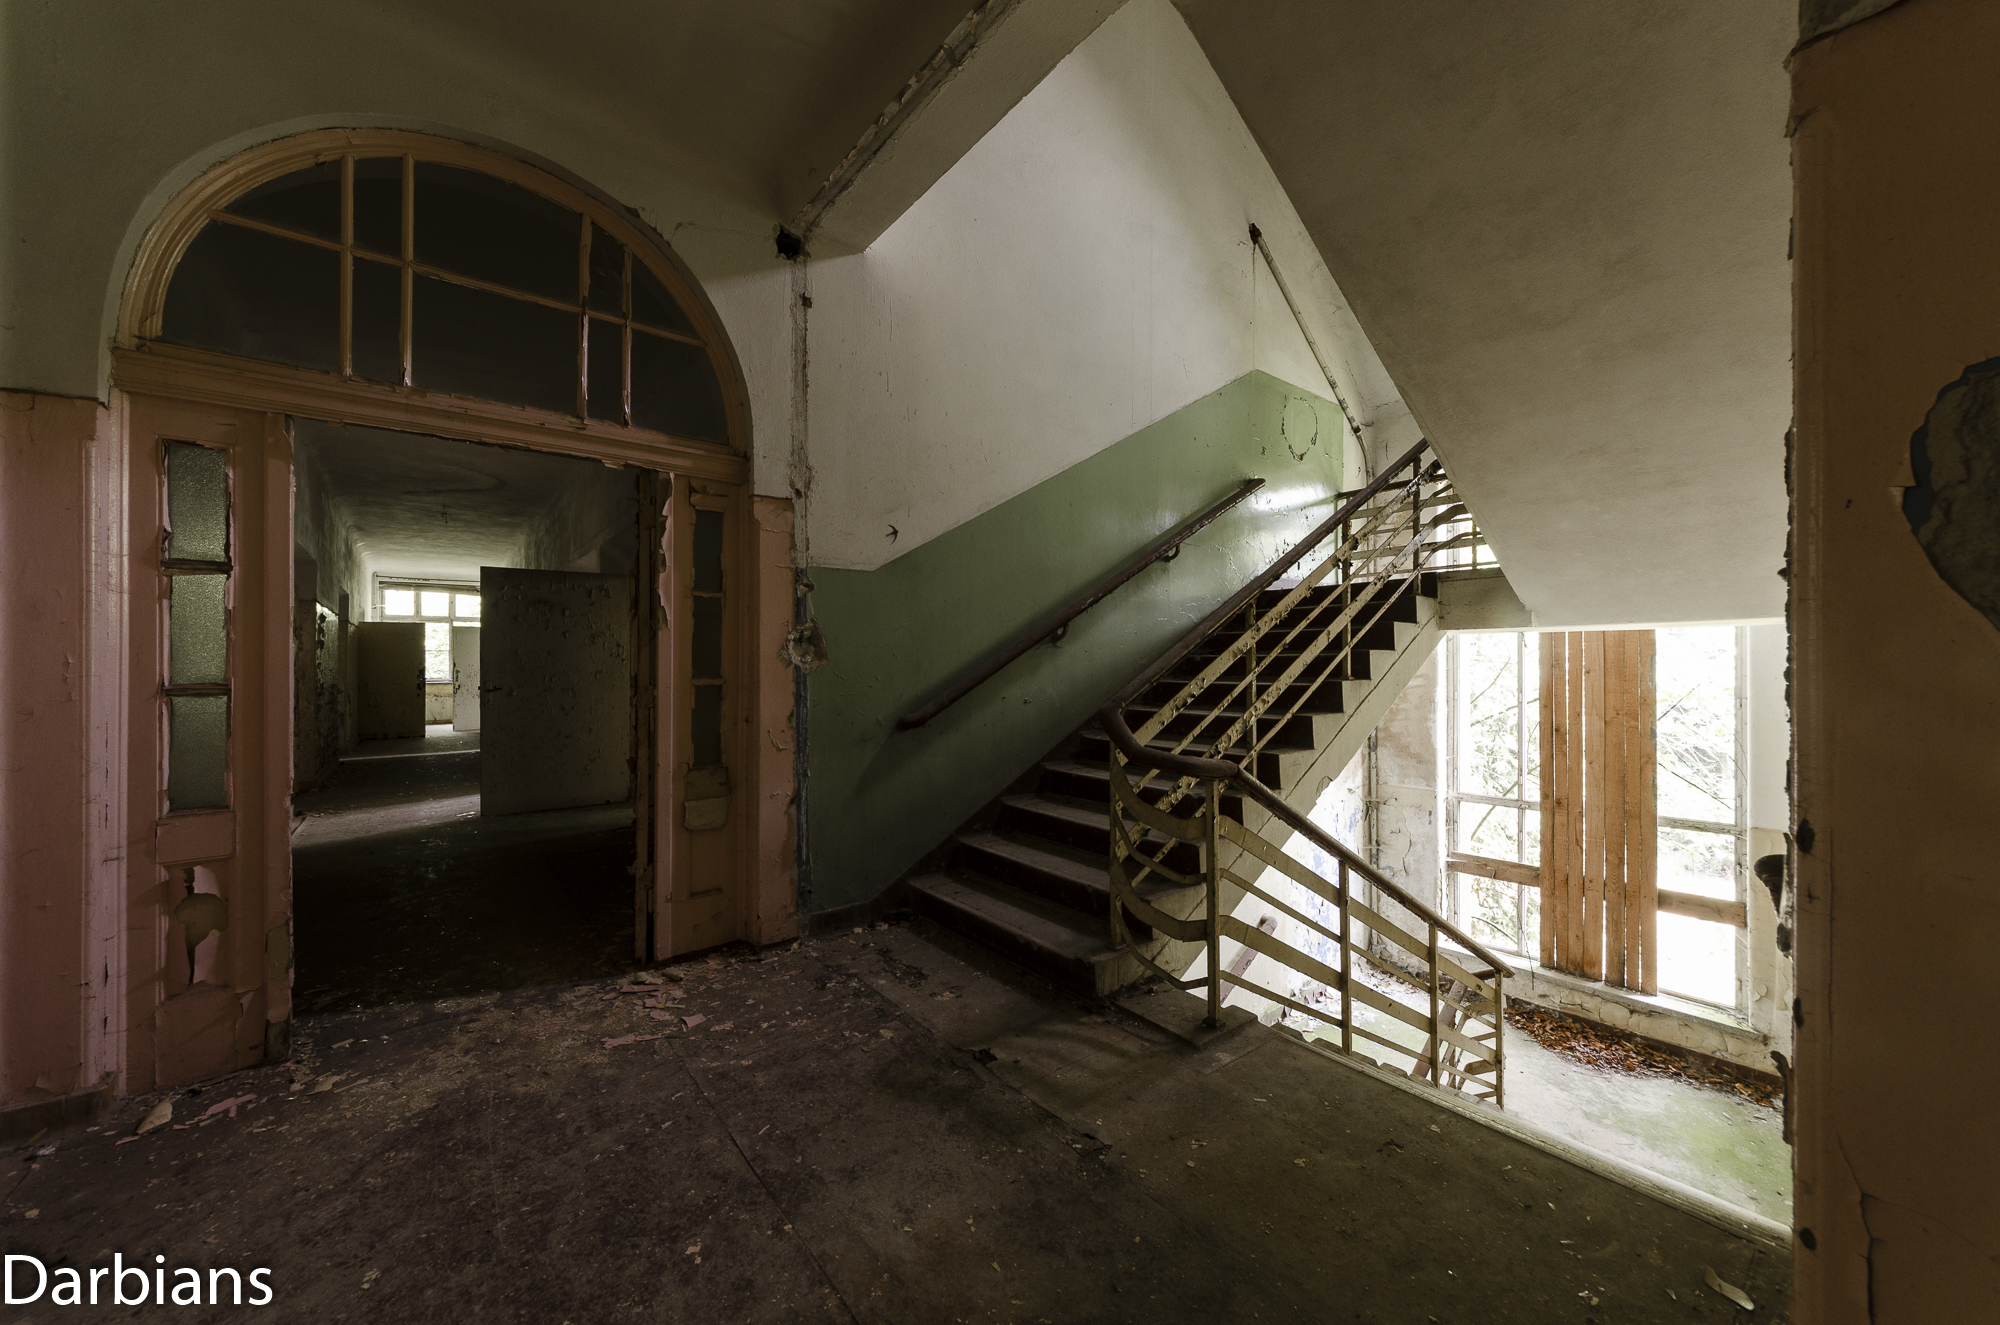 Stairwell leading to a corridor.